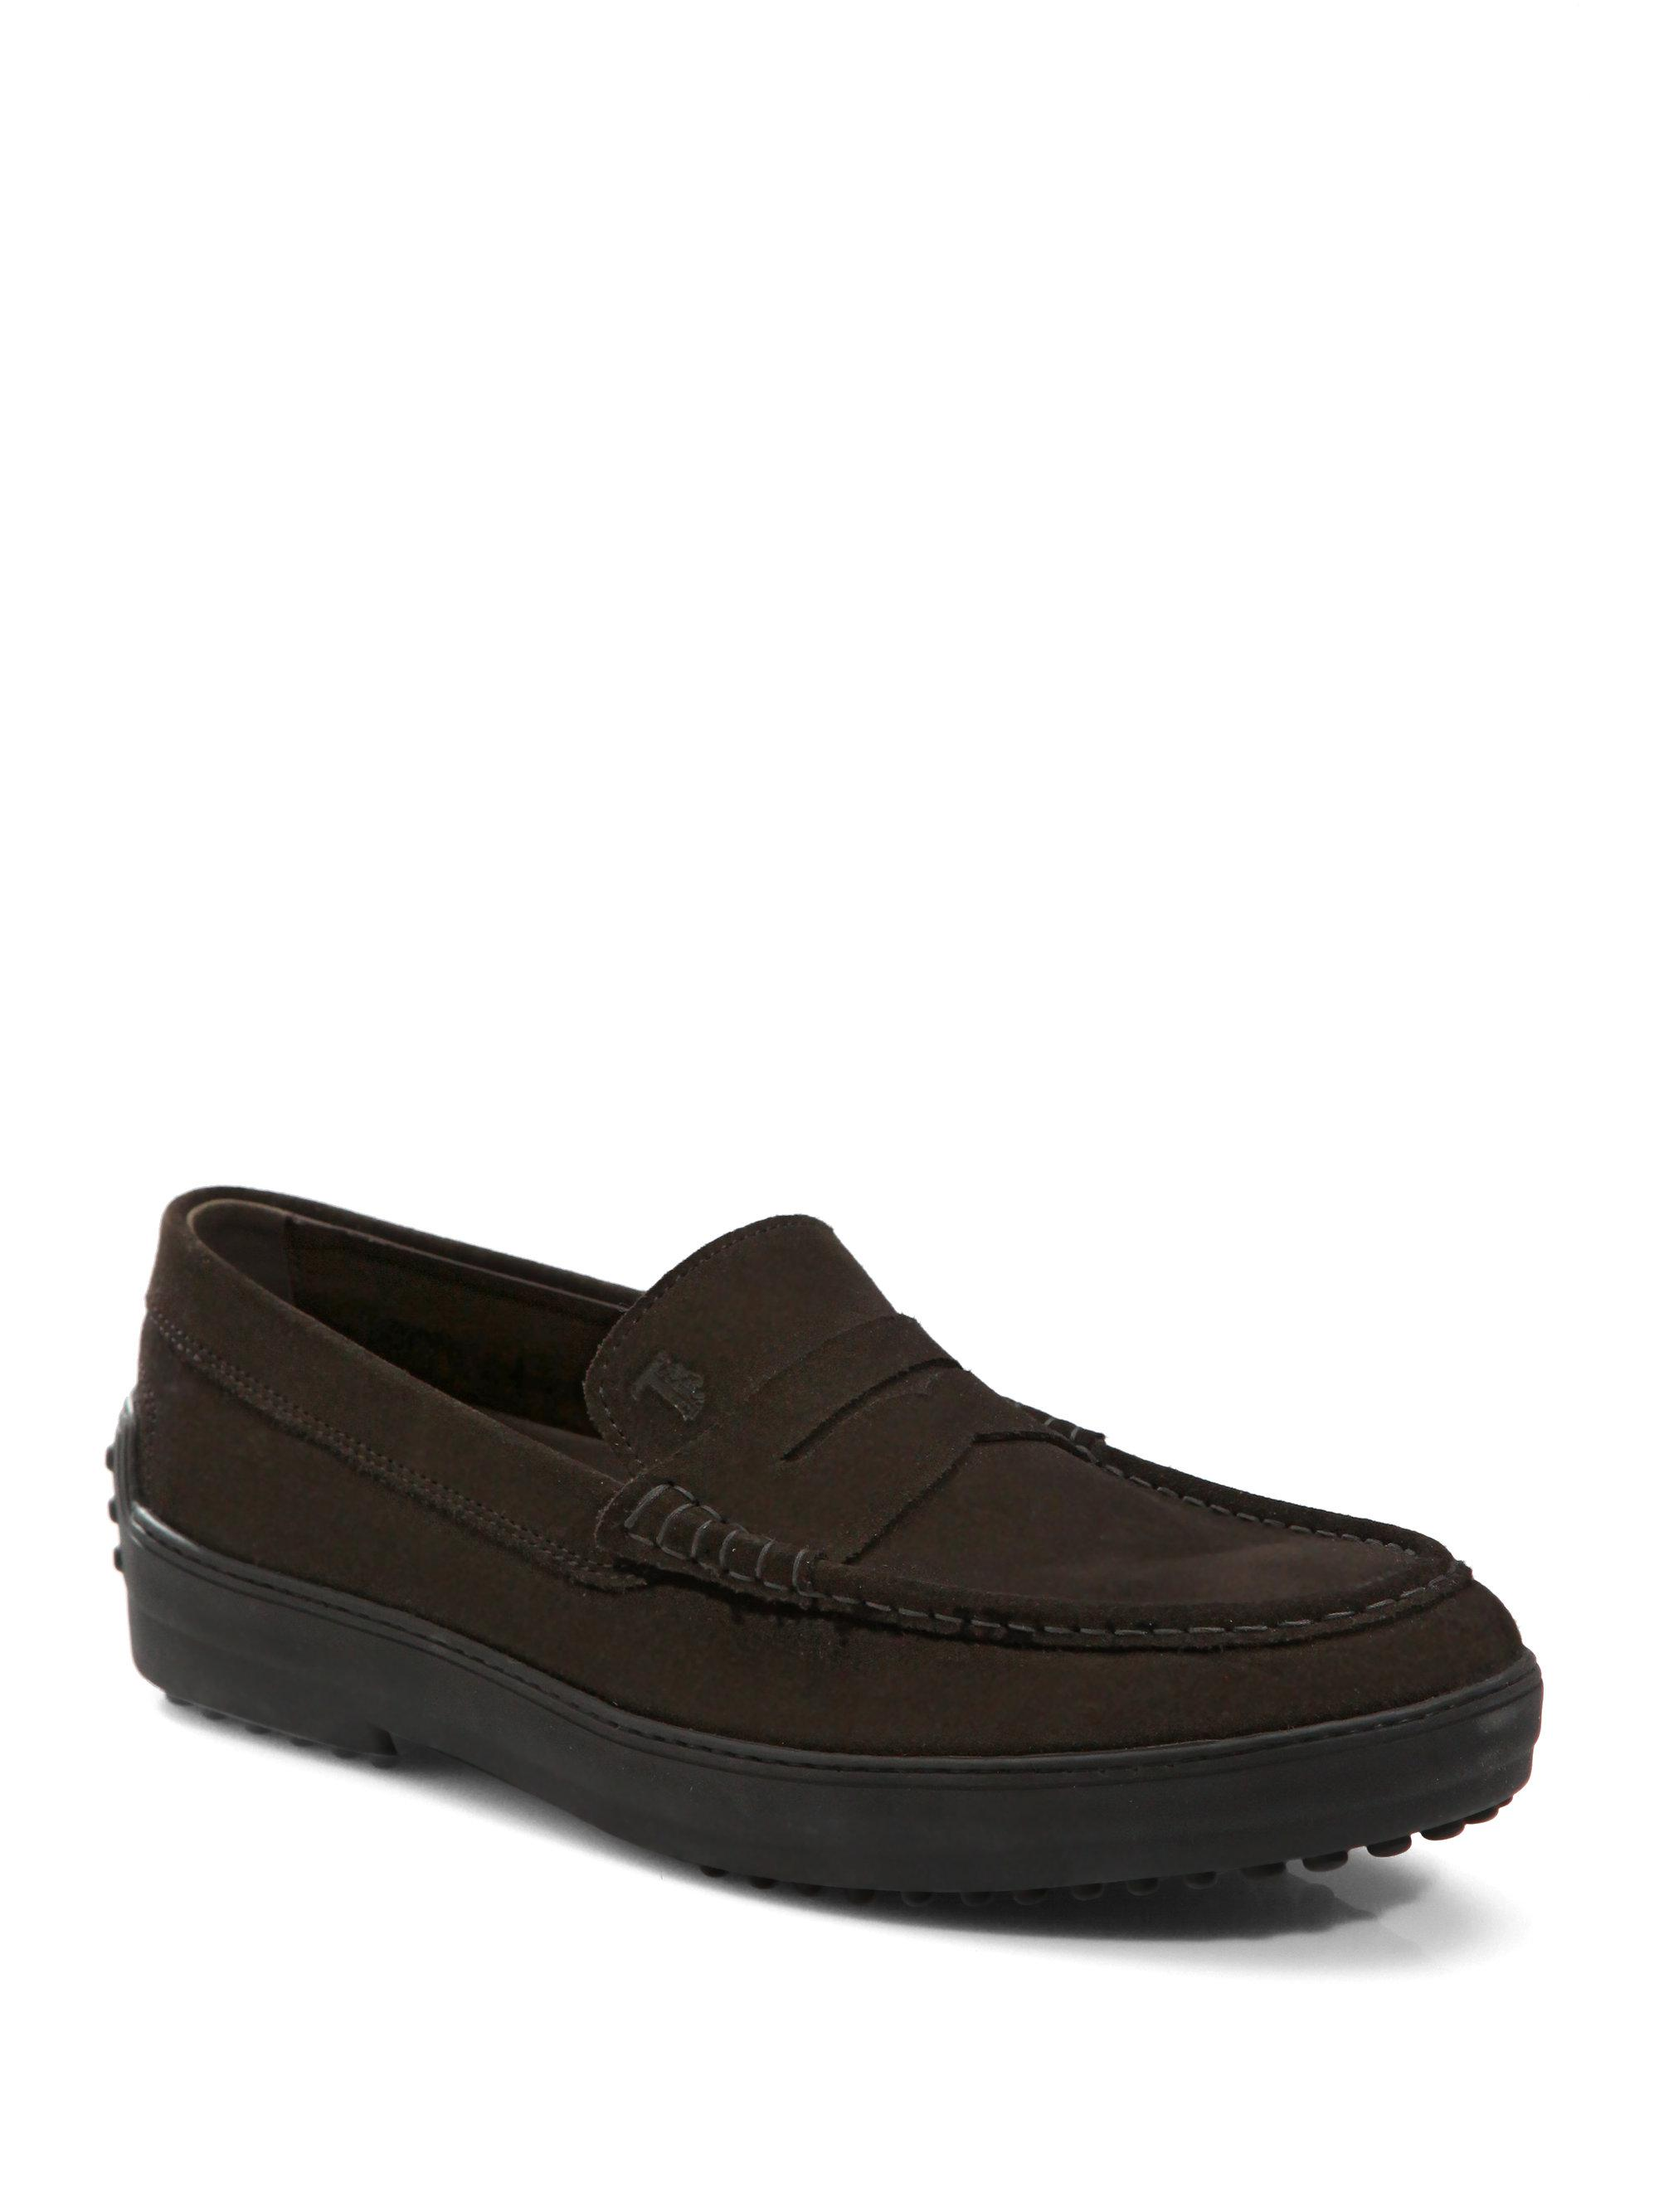 Gommino Moccasins in Leather and Suede Tod's 7EAaw